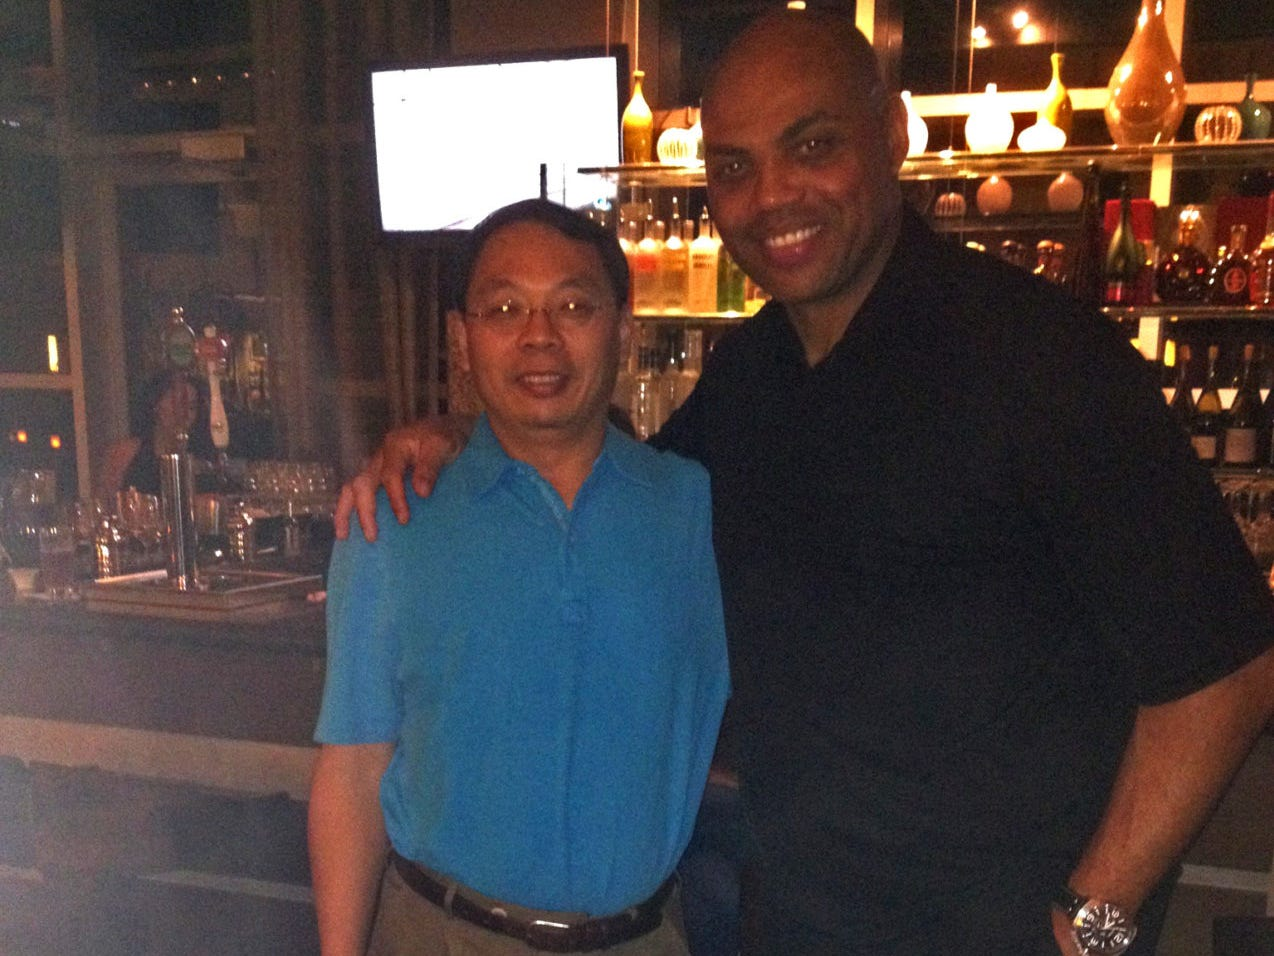 Lin Wang, left, takes a picture with basketball legend Charles Barkley.